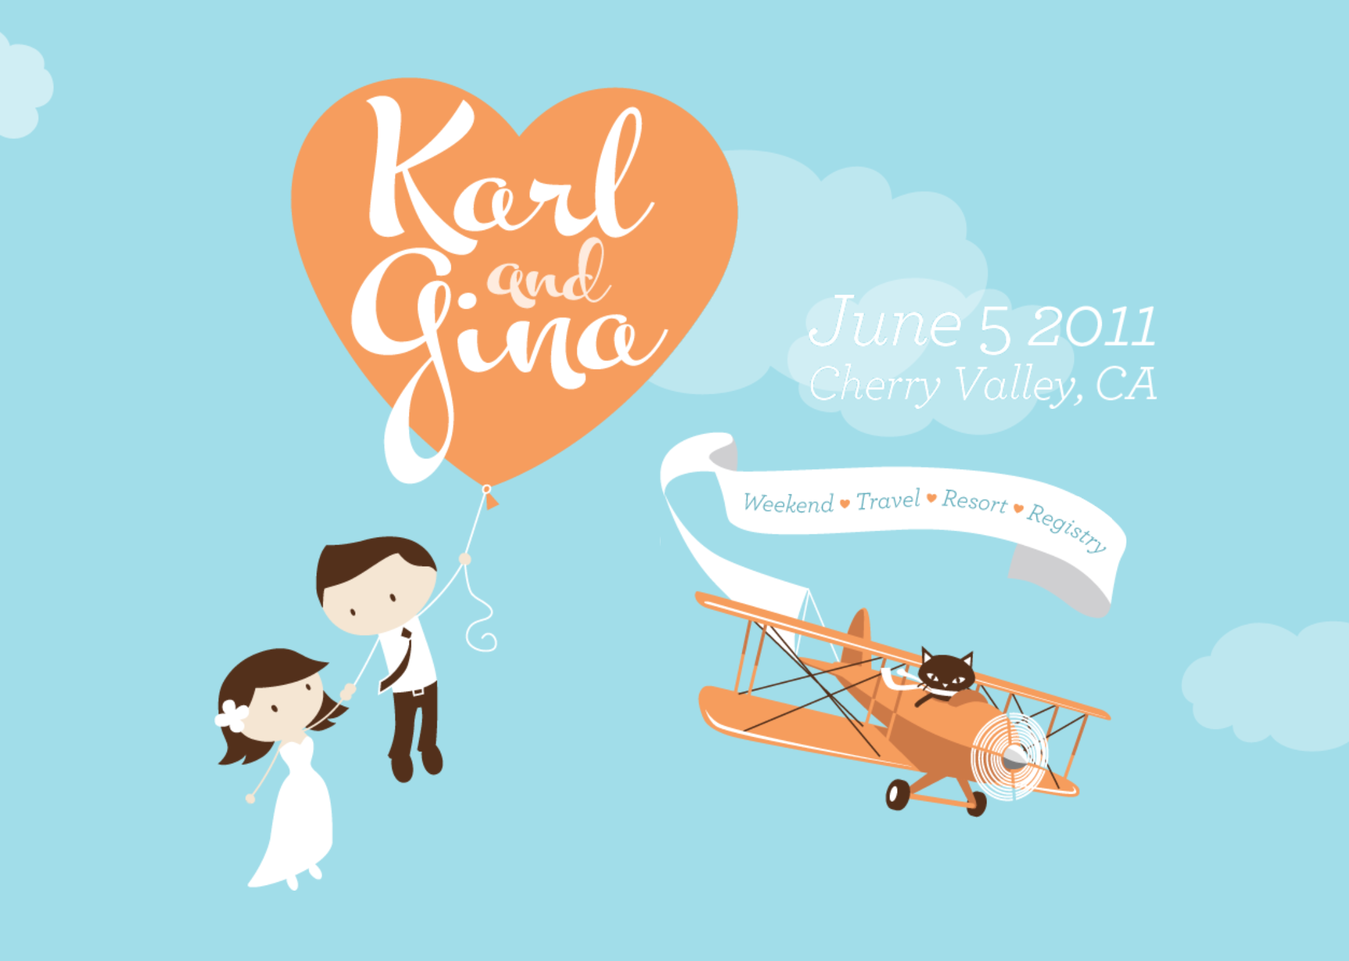 Wedding Website of Karl and Gina